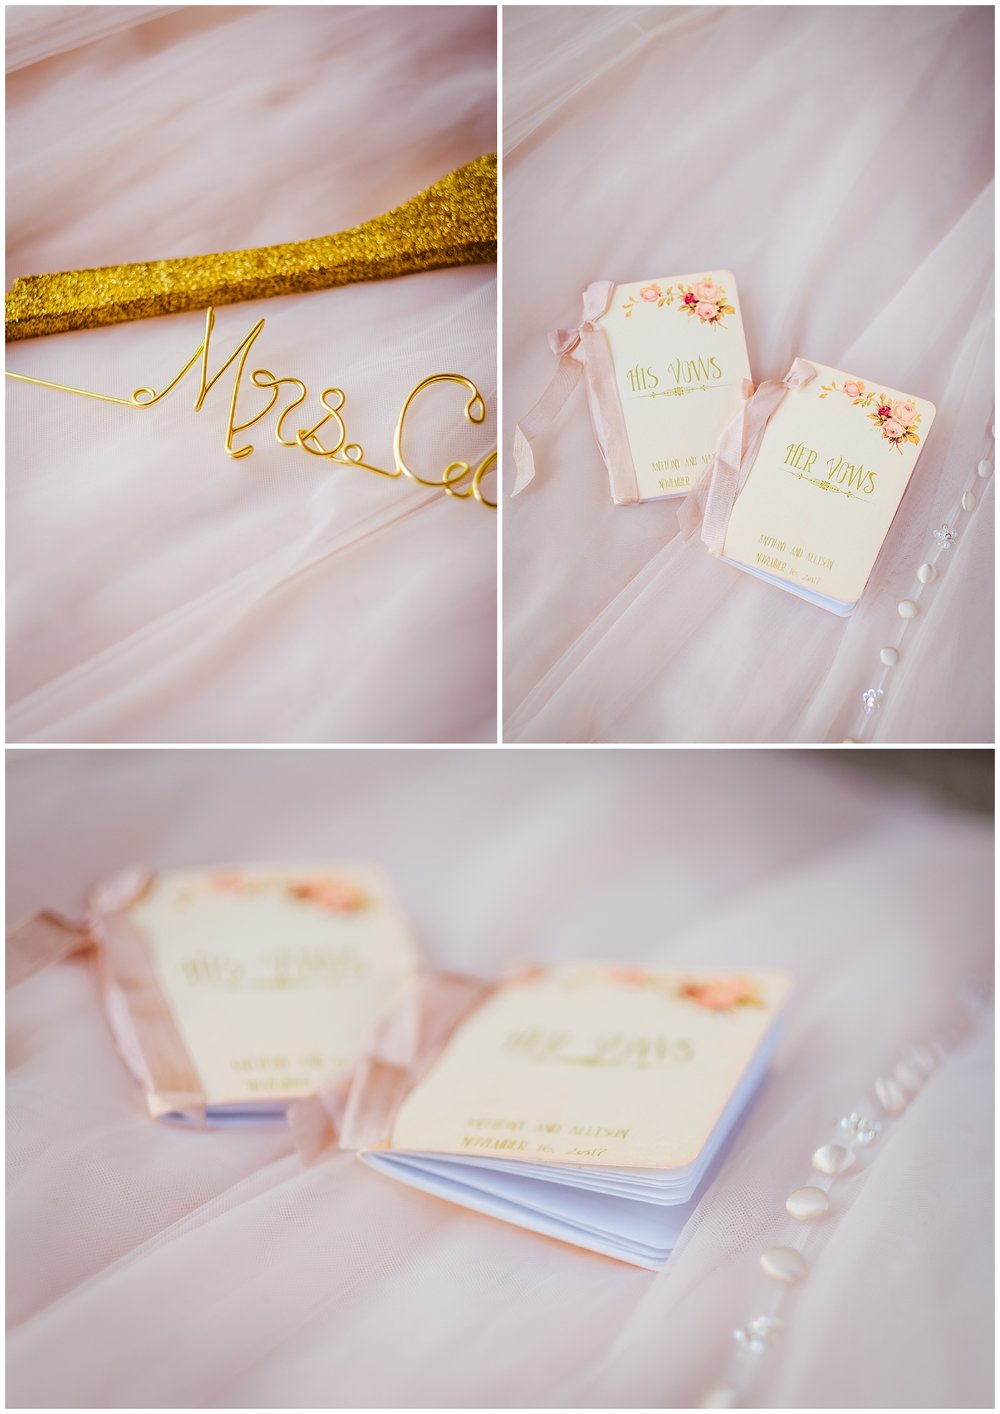 tampa-wedding-photographer-kapok-special-events-center-hayley-paige-gress-blush-gold-disney_0004.jpg